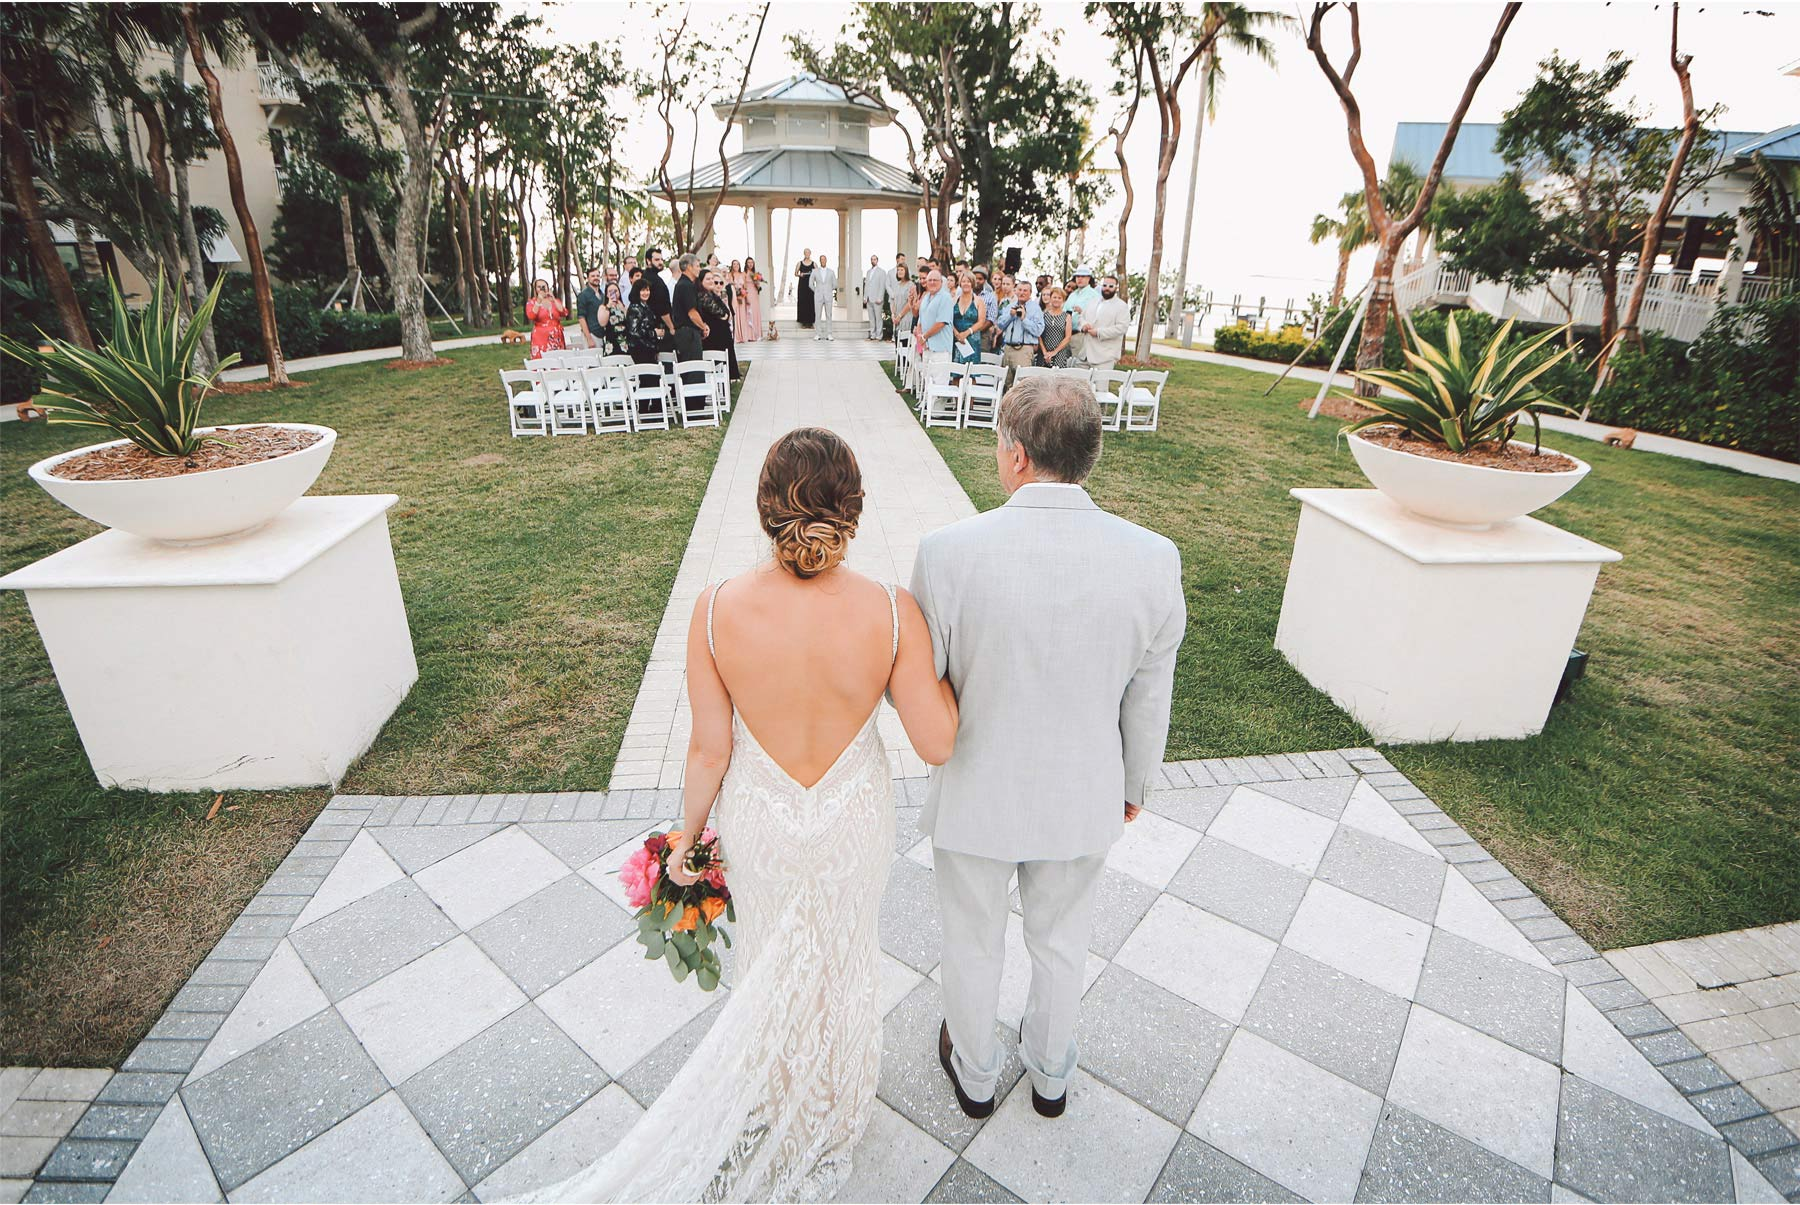 13-Key-Largo-Florida-Keys-Wedding-Photographer-by-Andrew-Vick-Photography-Playa-Largo-Resort-and-Spa-Hotel-Destination-Winter-Ceremony-Bride-Groom-Father-Parents-Processional-Carrie-and-Brian.jpg